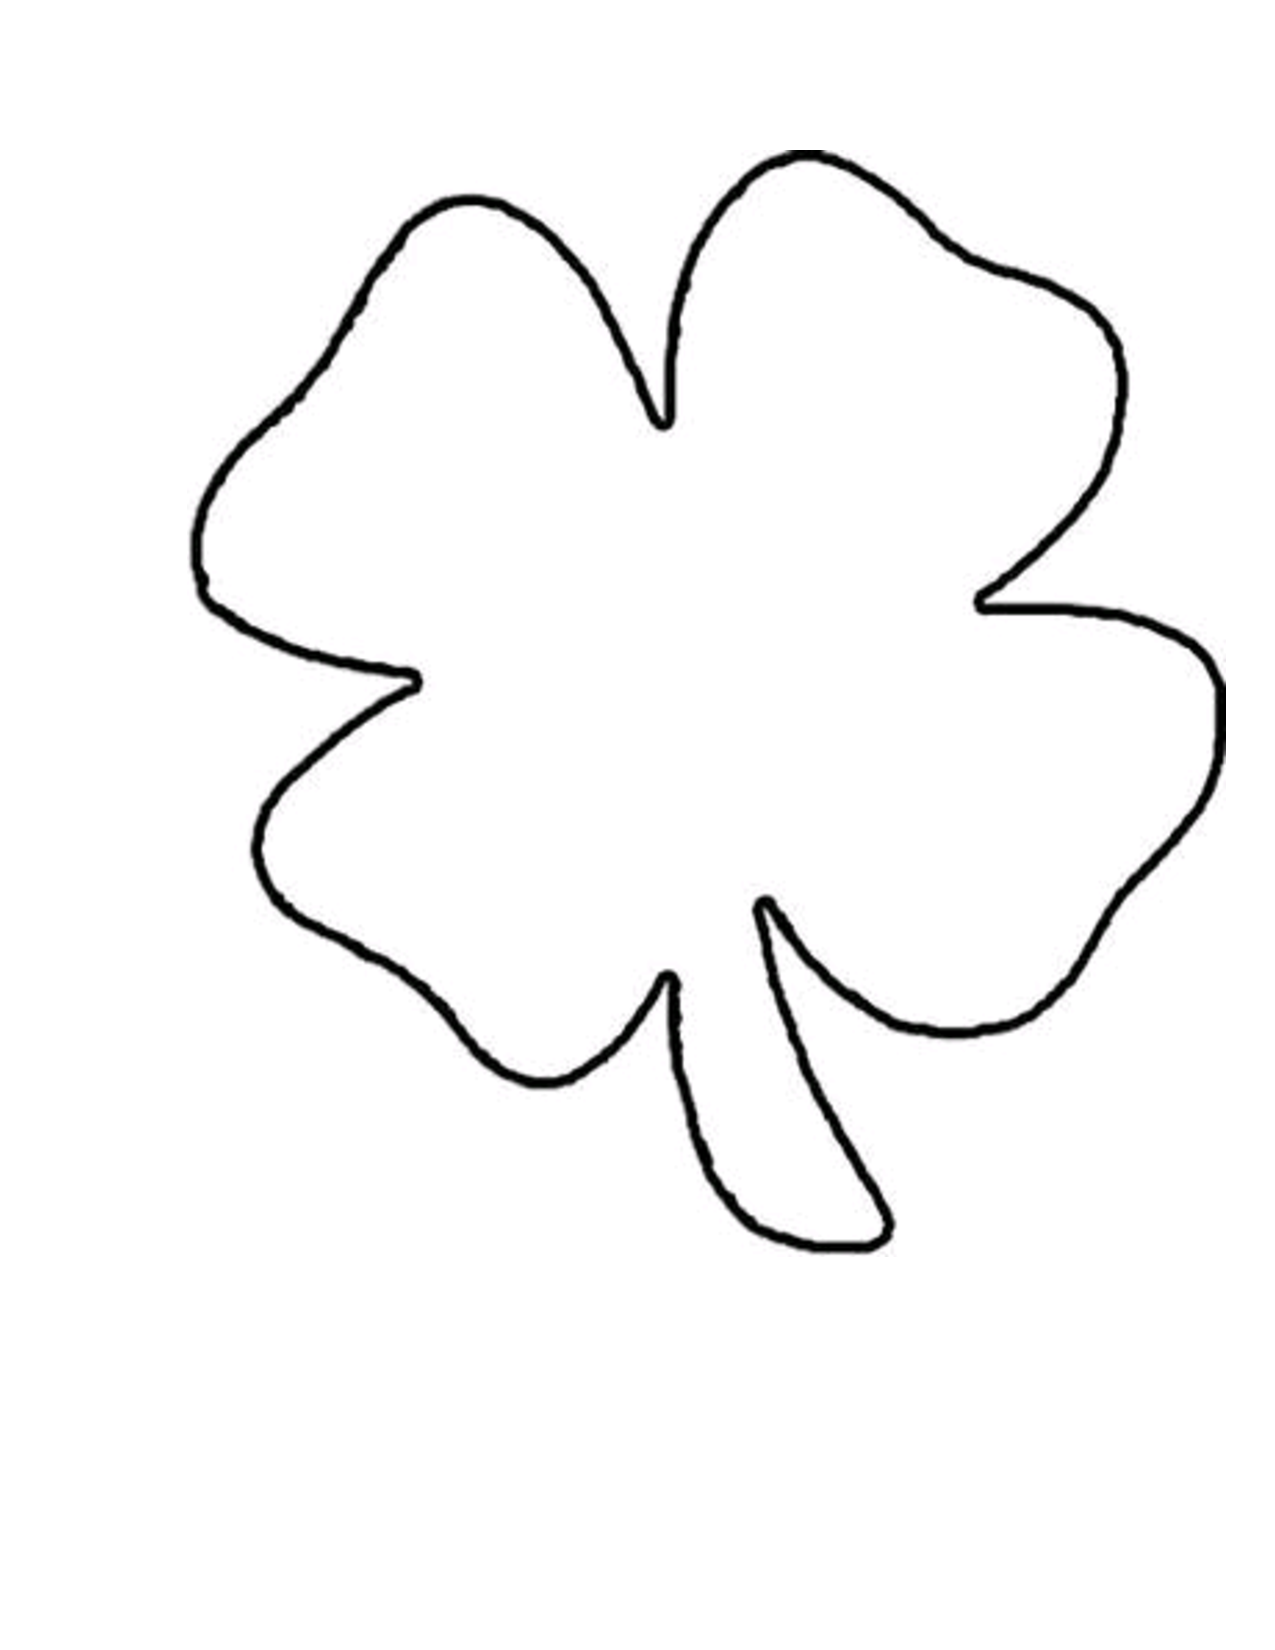 Shamrock Templates Printable